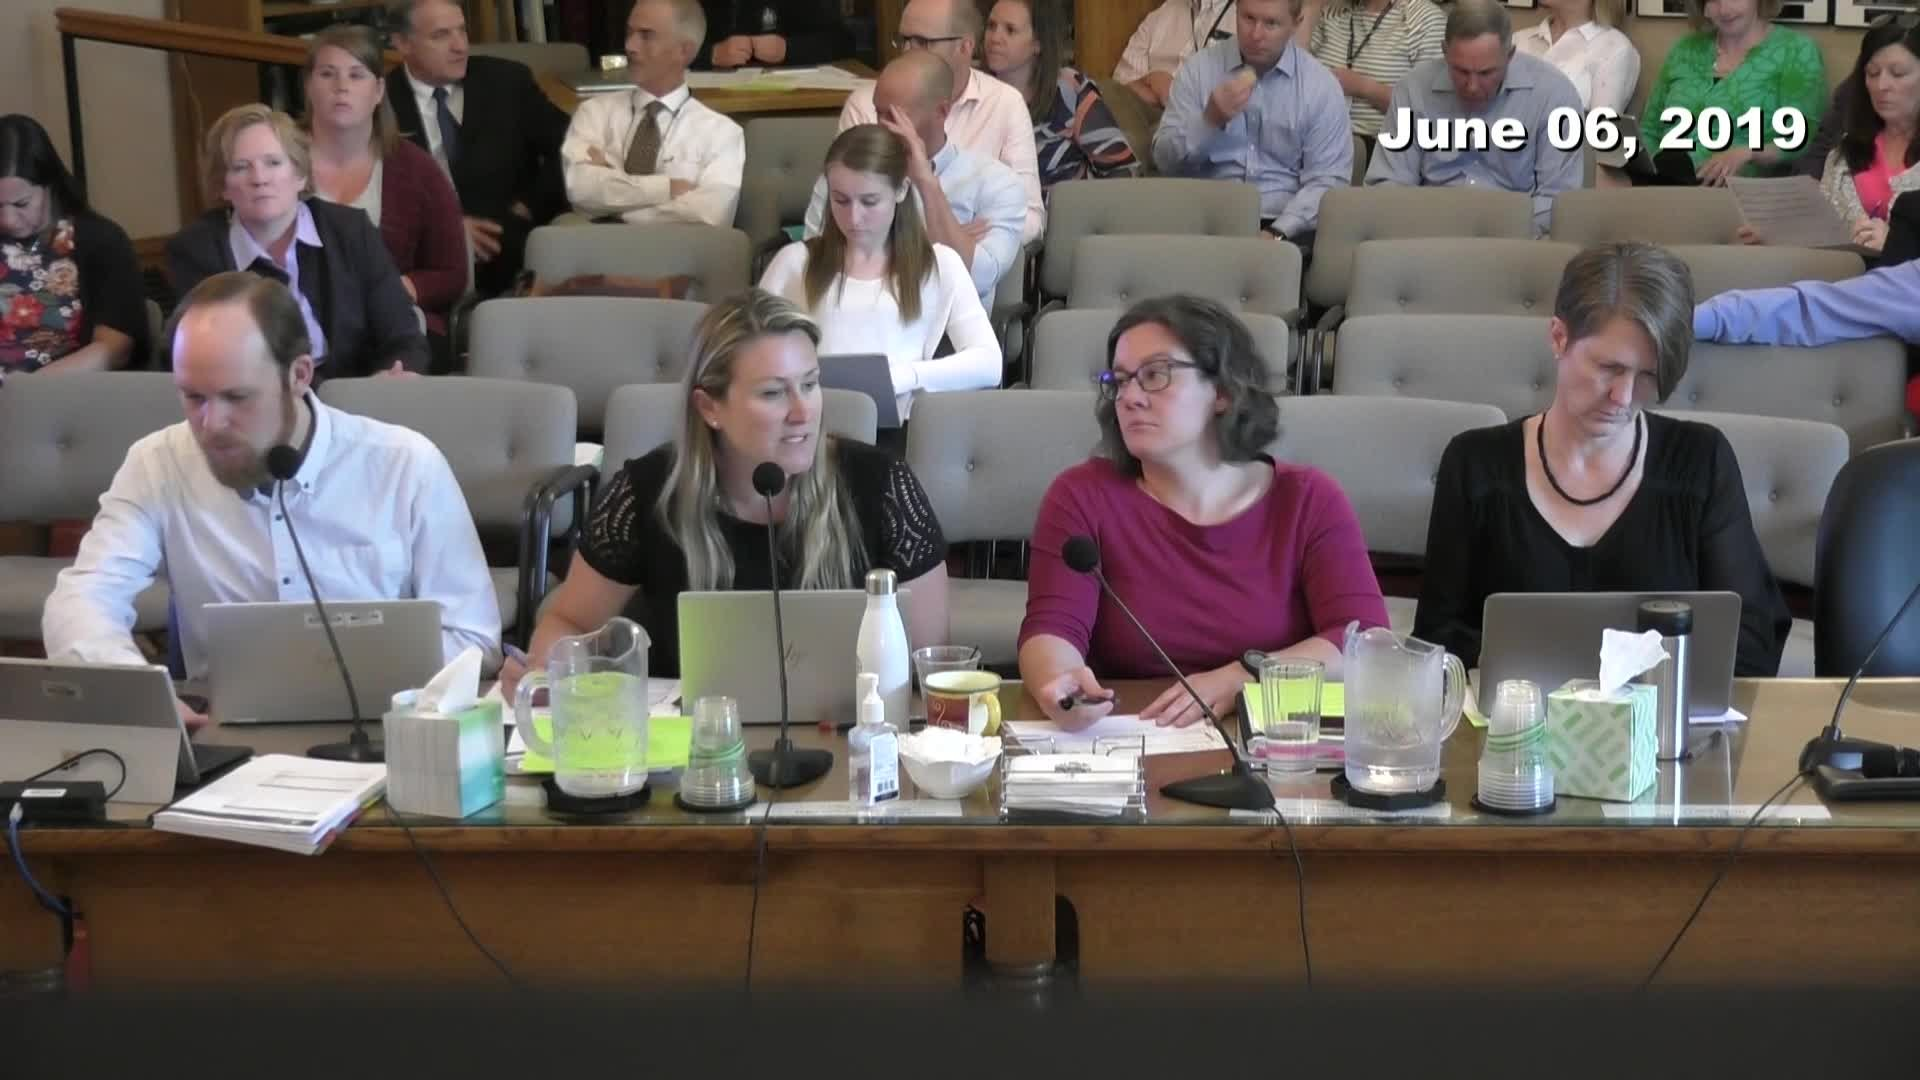 City Council Work Session - 06/06/2019